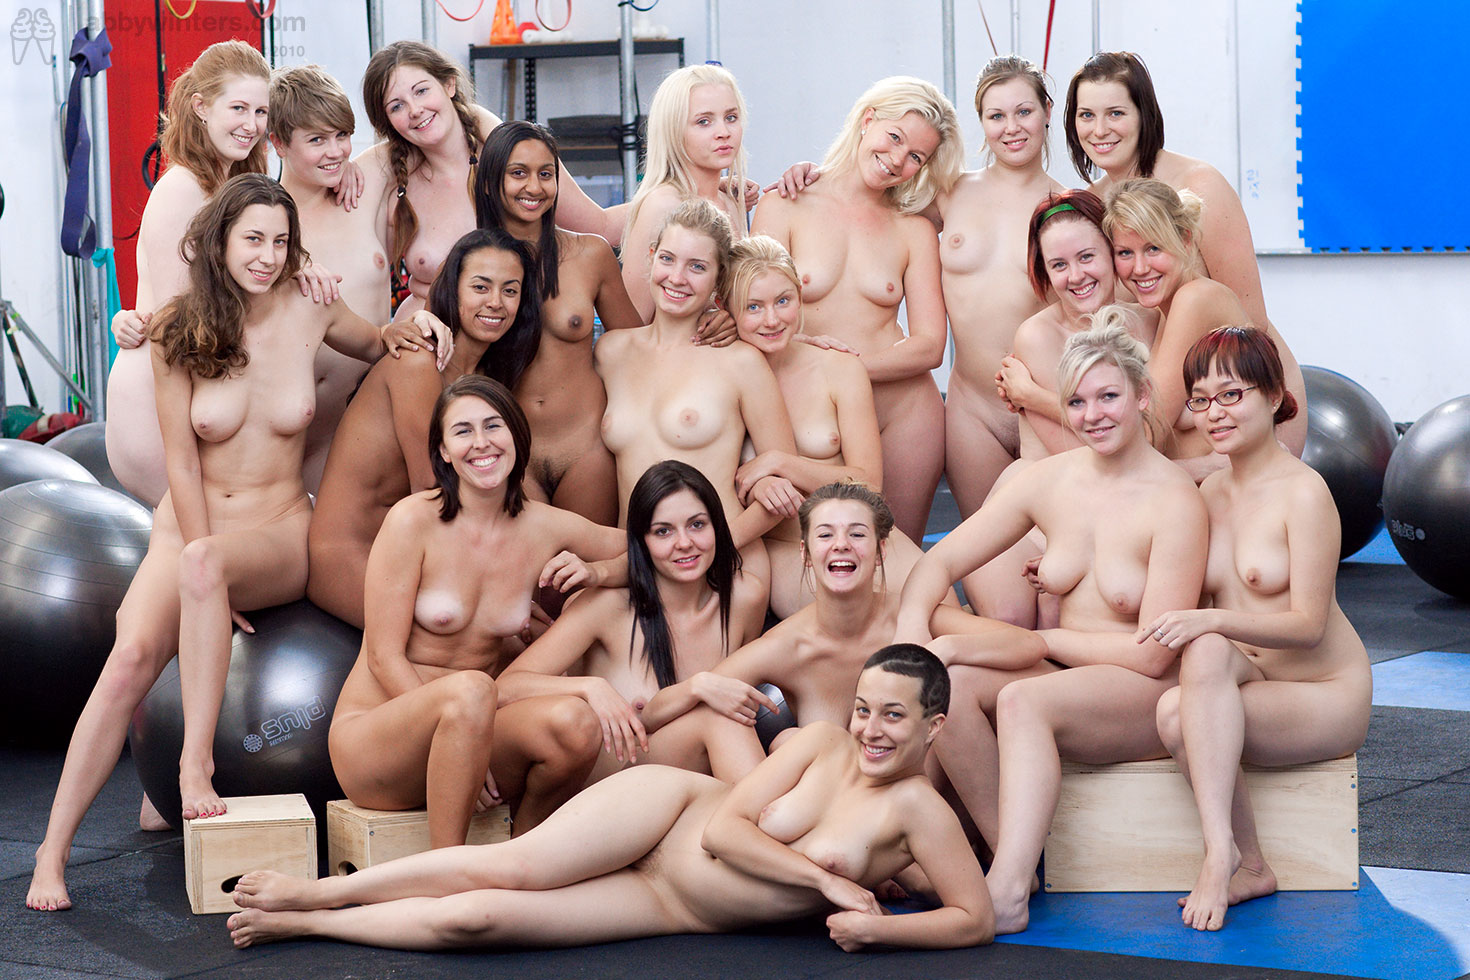 Sport girls groups naked